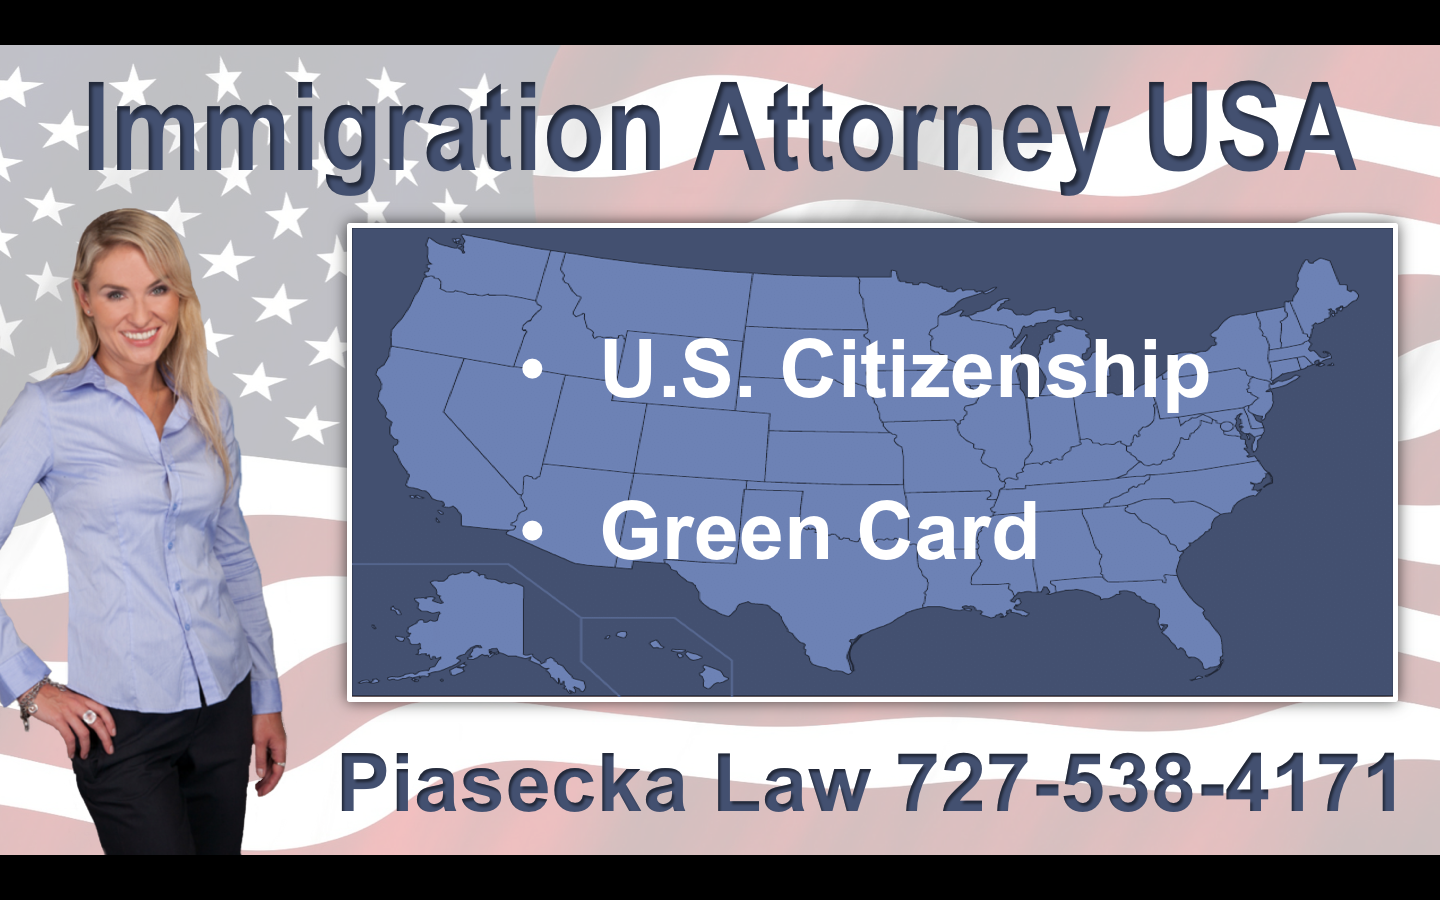 Immigration Attorney Clearwater Florida